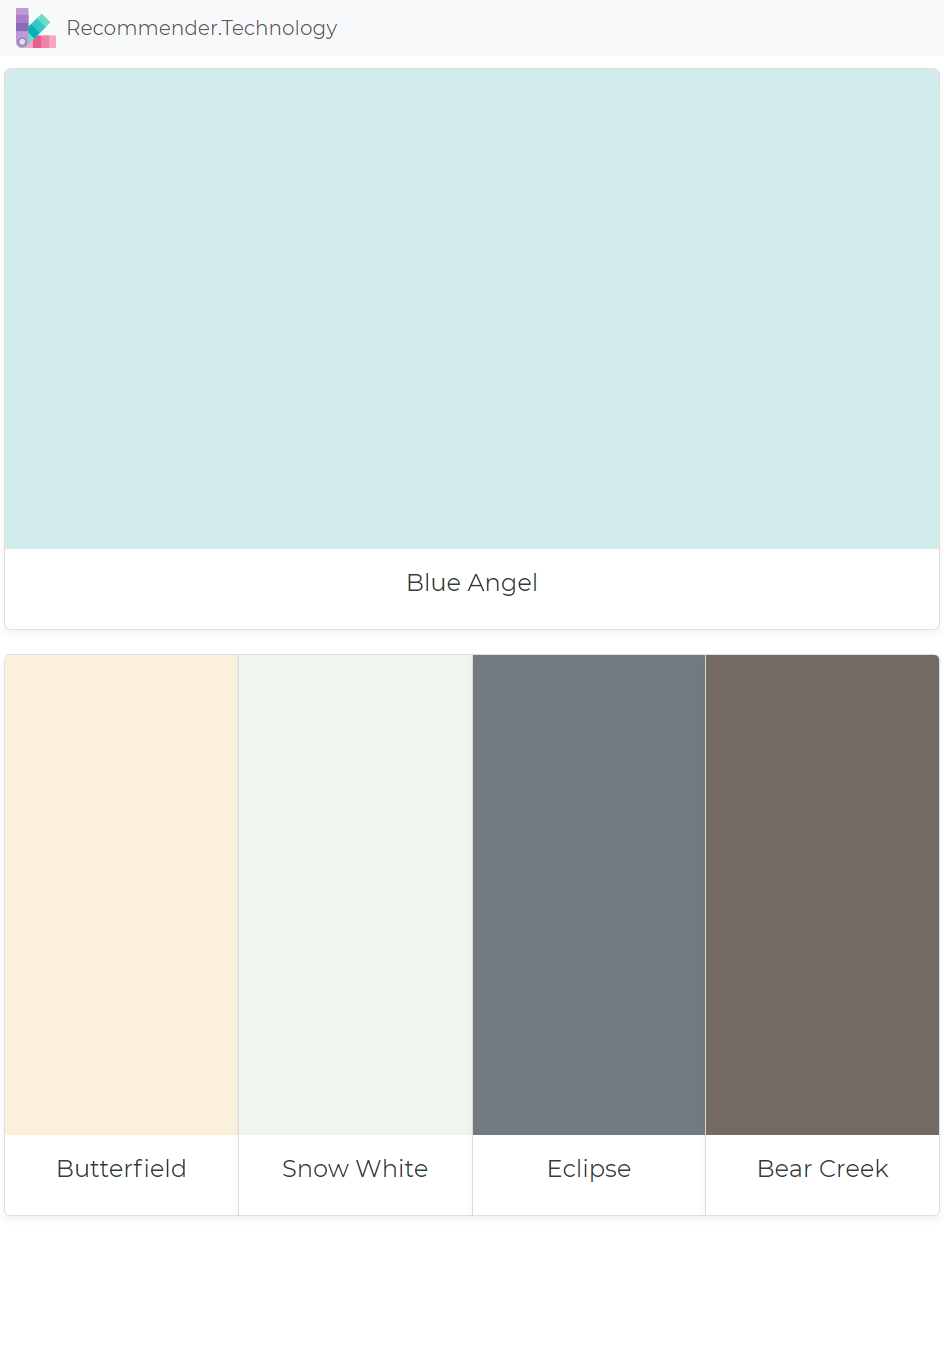 Blue Angel Erfield Snow White Eclipse Bear Creek Paint Color Palettes